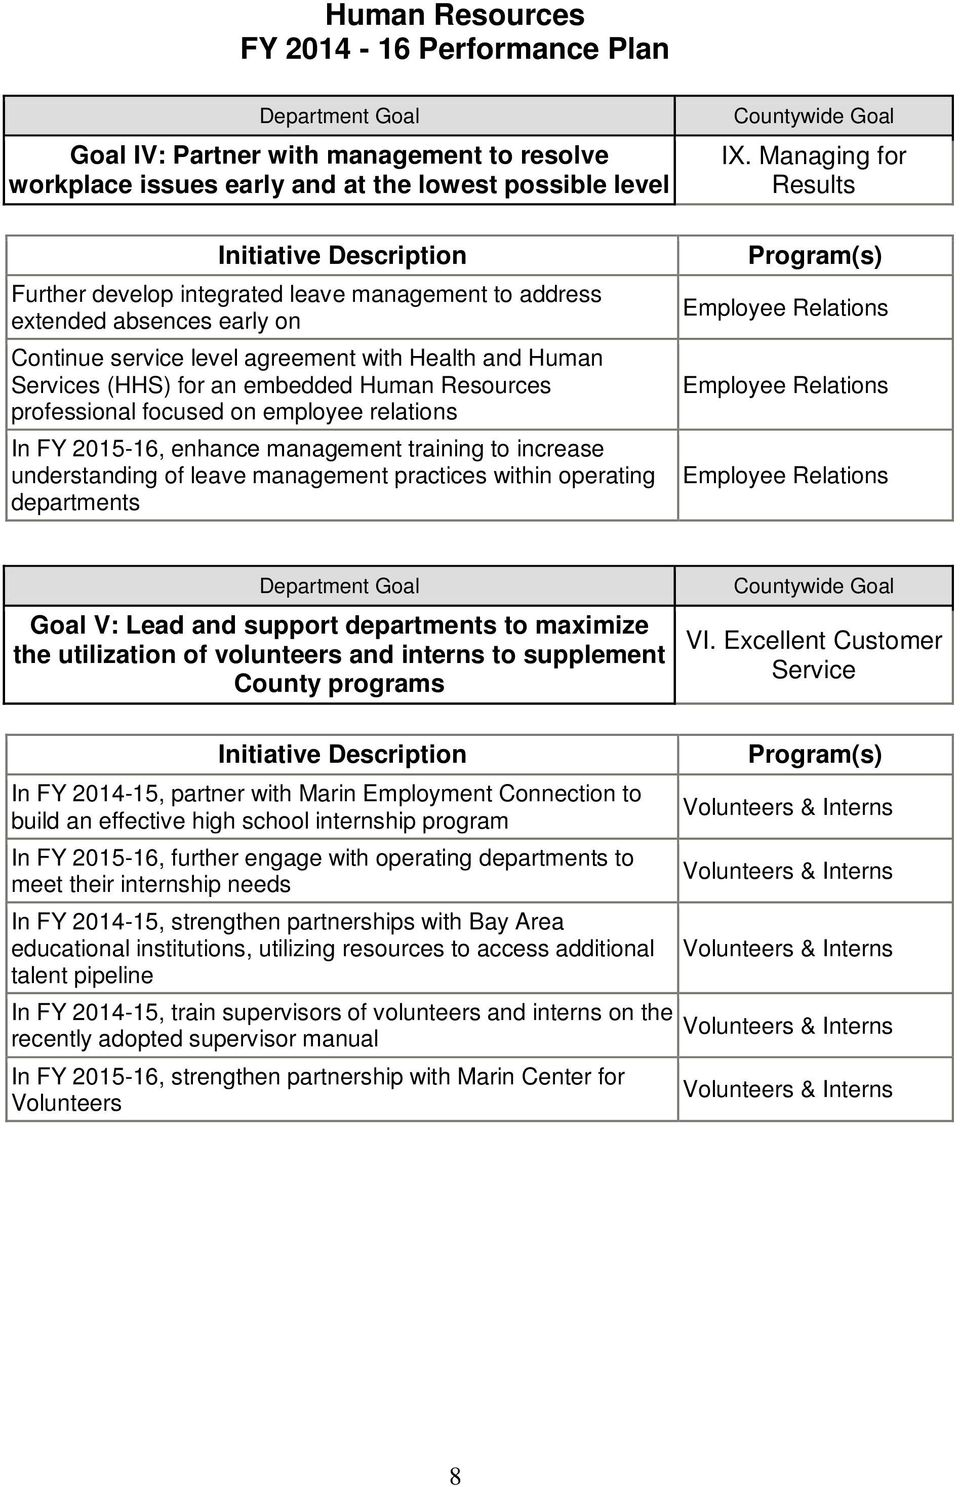 Resources professional focused on employee relations In FY 2015-16, enhance management training to increase understanding of leave management practices within operating departments Employee Relations